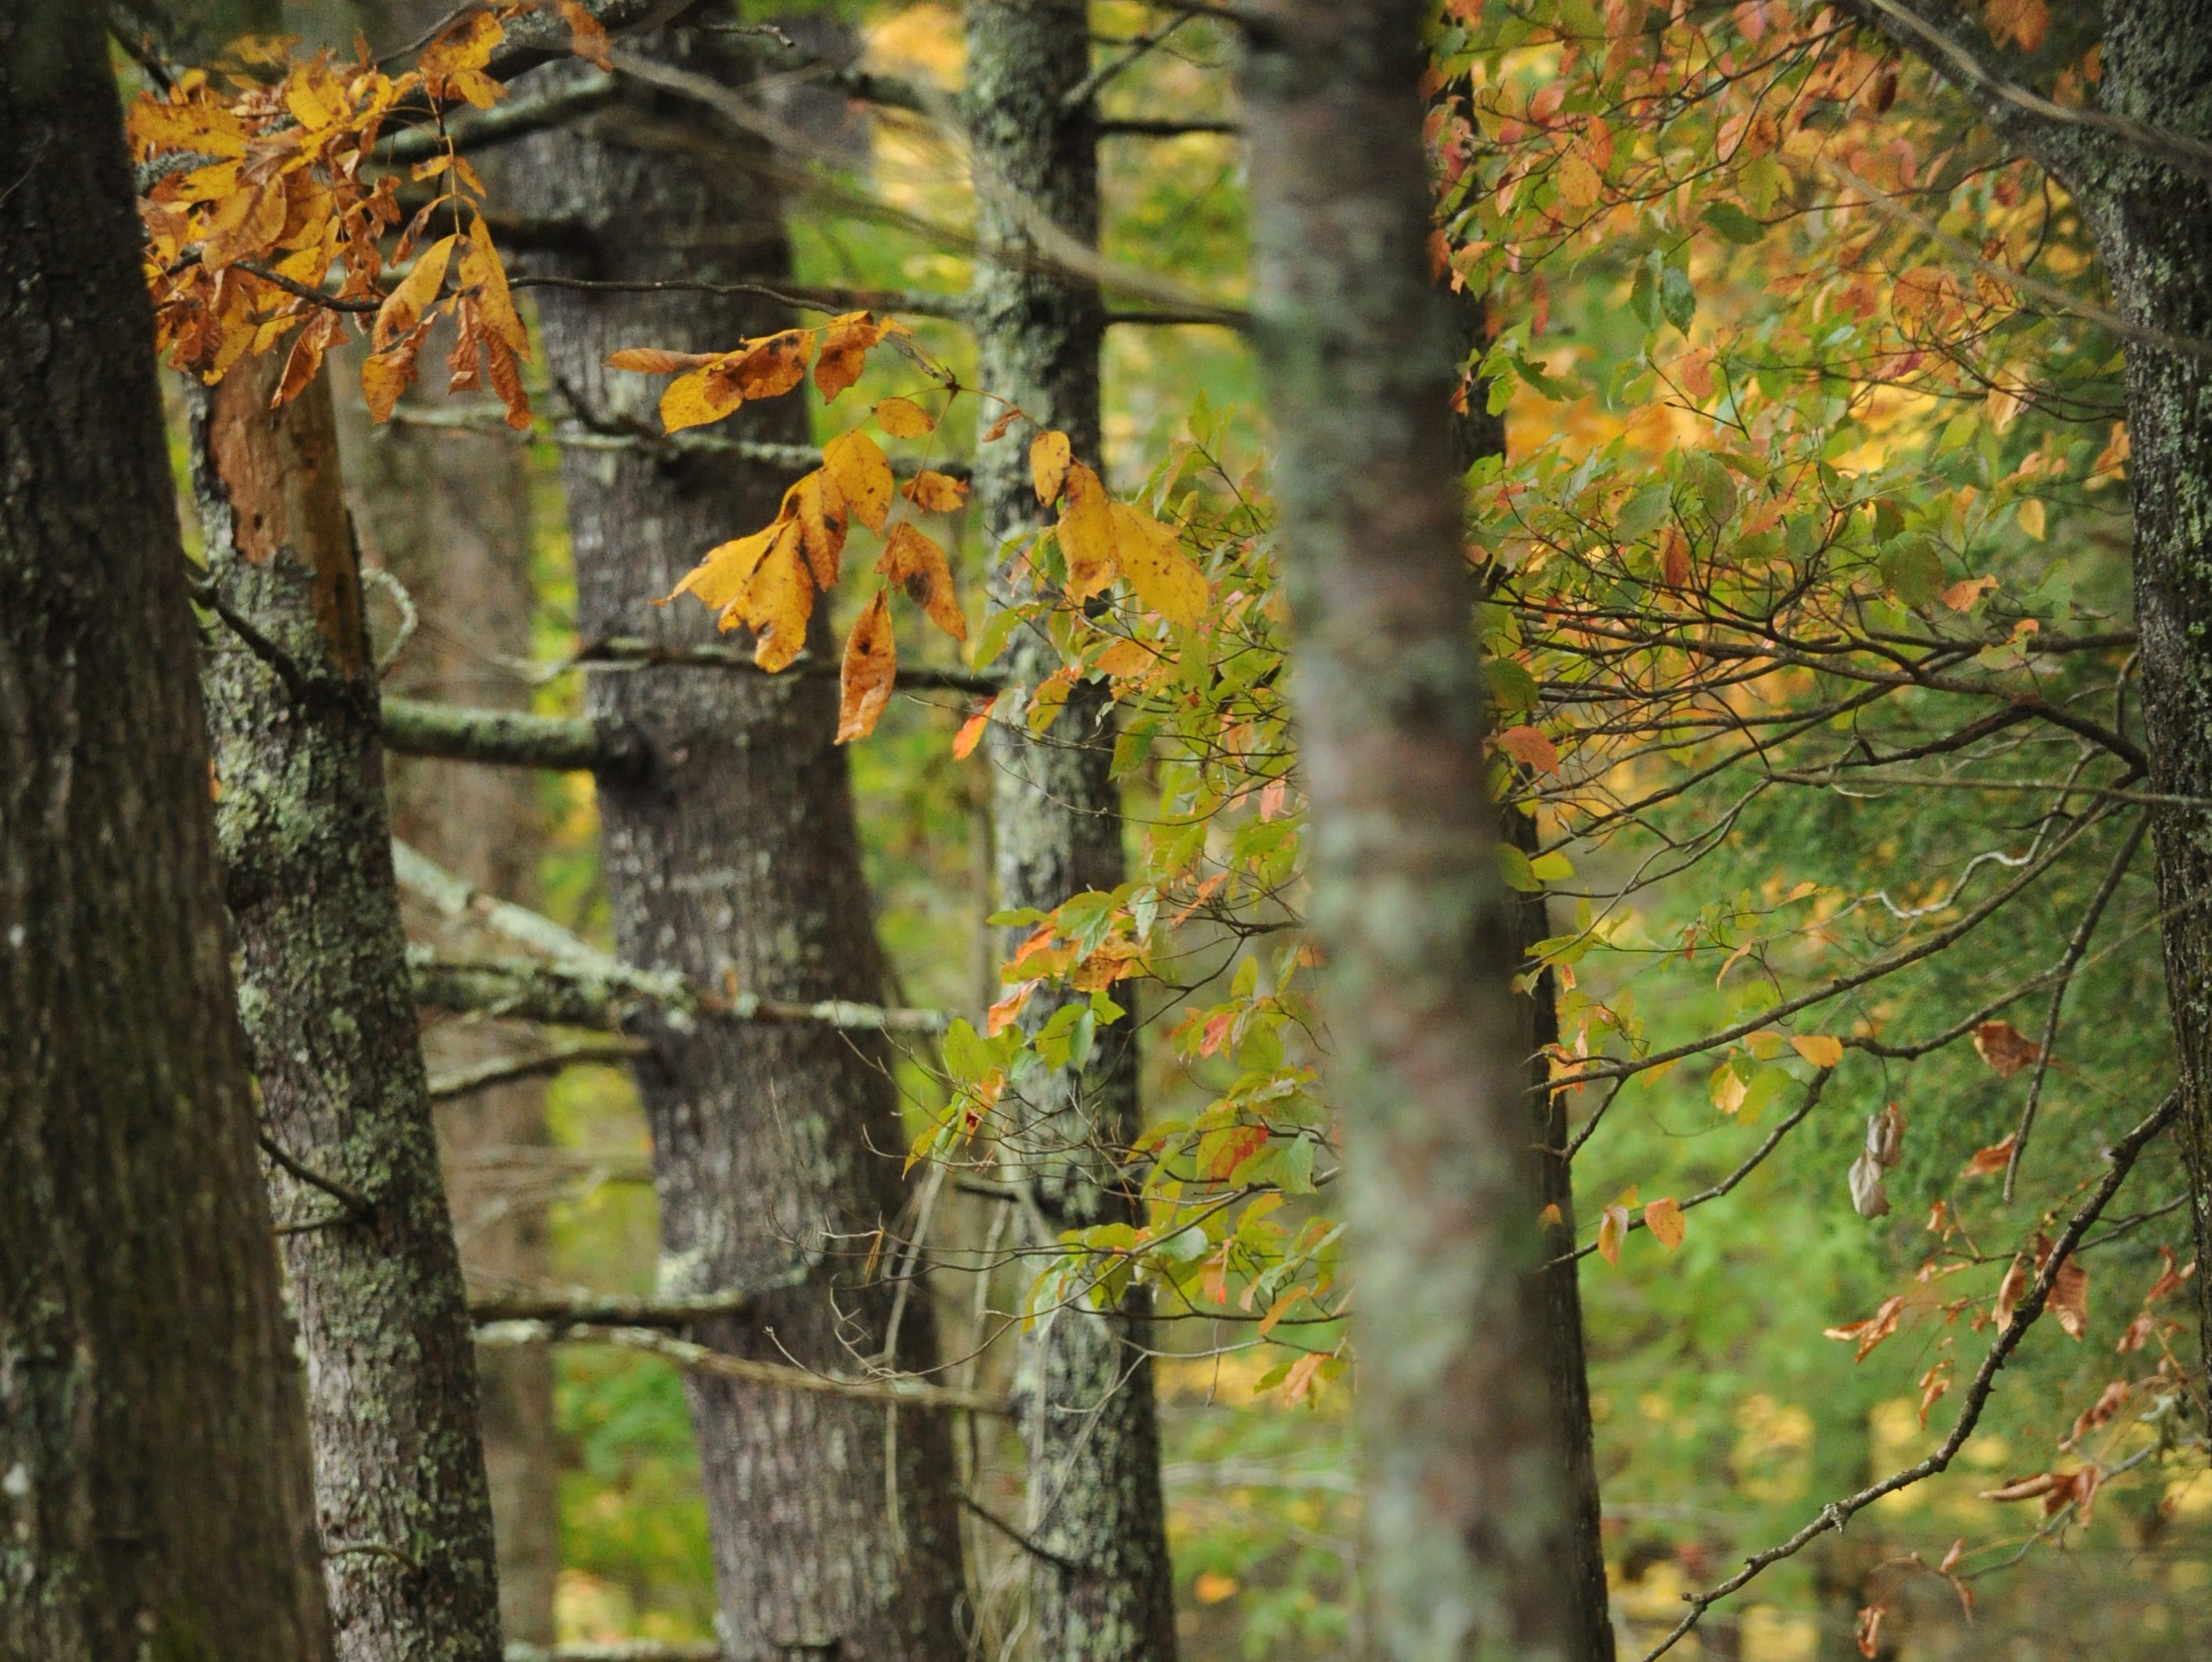 A photo for the Book of Lists cover shot in Cades Cove in the Great Smoky Mountains National Park Thursday, Oct. 20, 2011.  (ADAM BRIMER/NEWS SENTINEL)